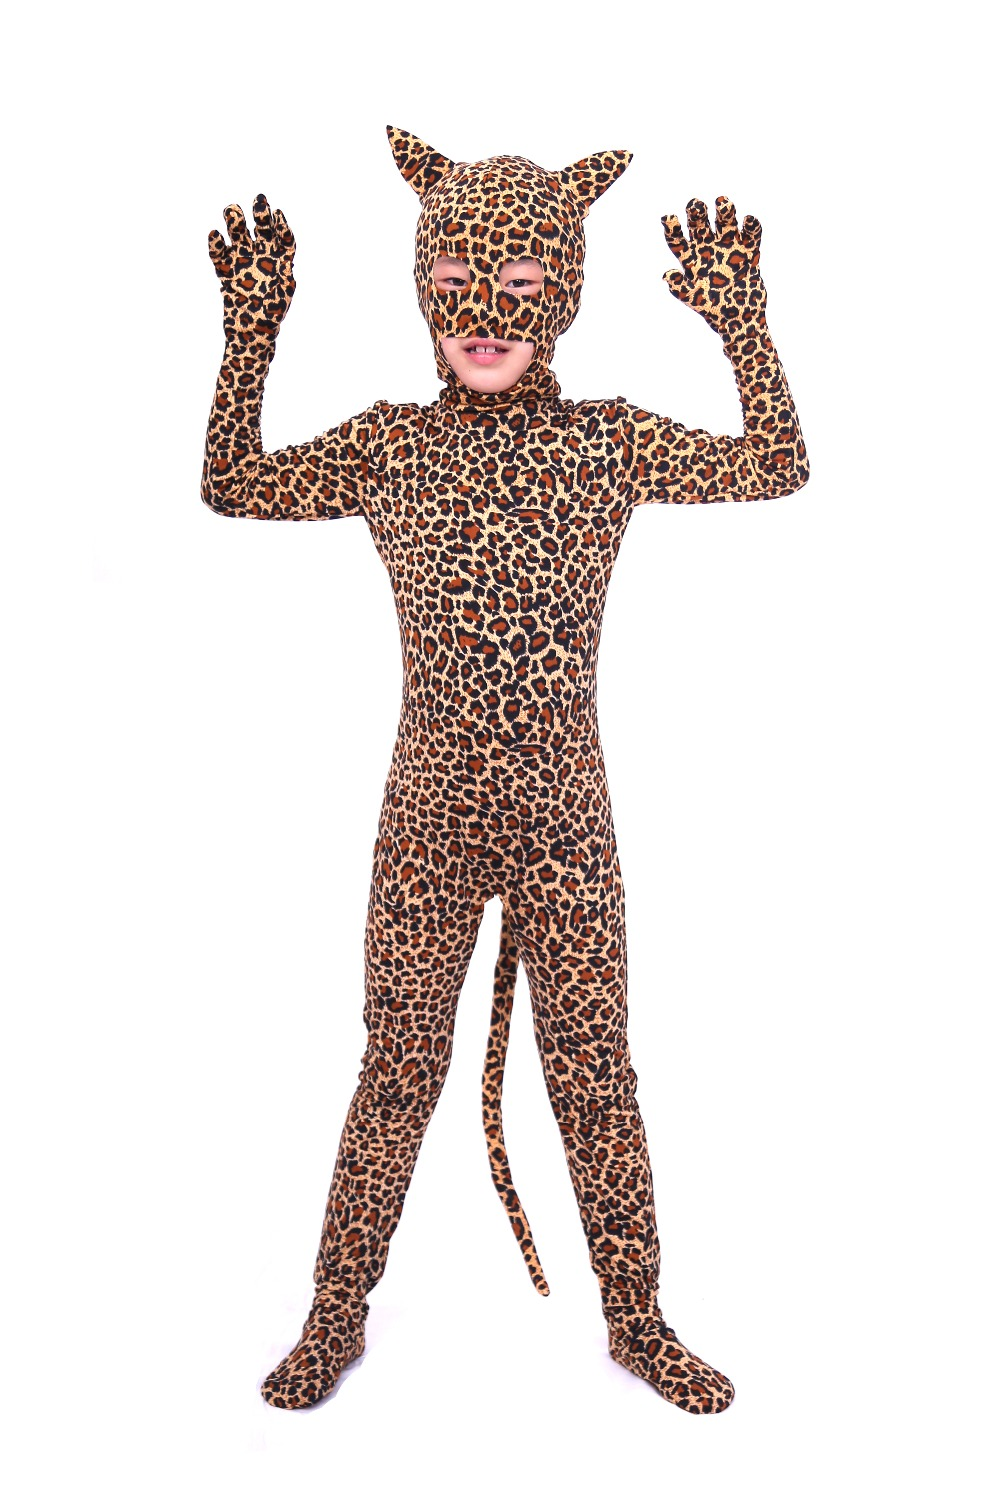 Unisex Child Open Eyes Open Nose and Mouth Lycra Leopard Animal Zentai Boys Cute Print Full Body Suit Zentai with Ear and Tail